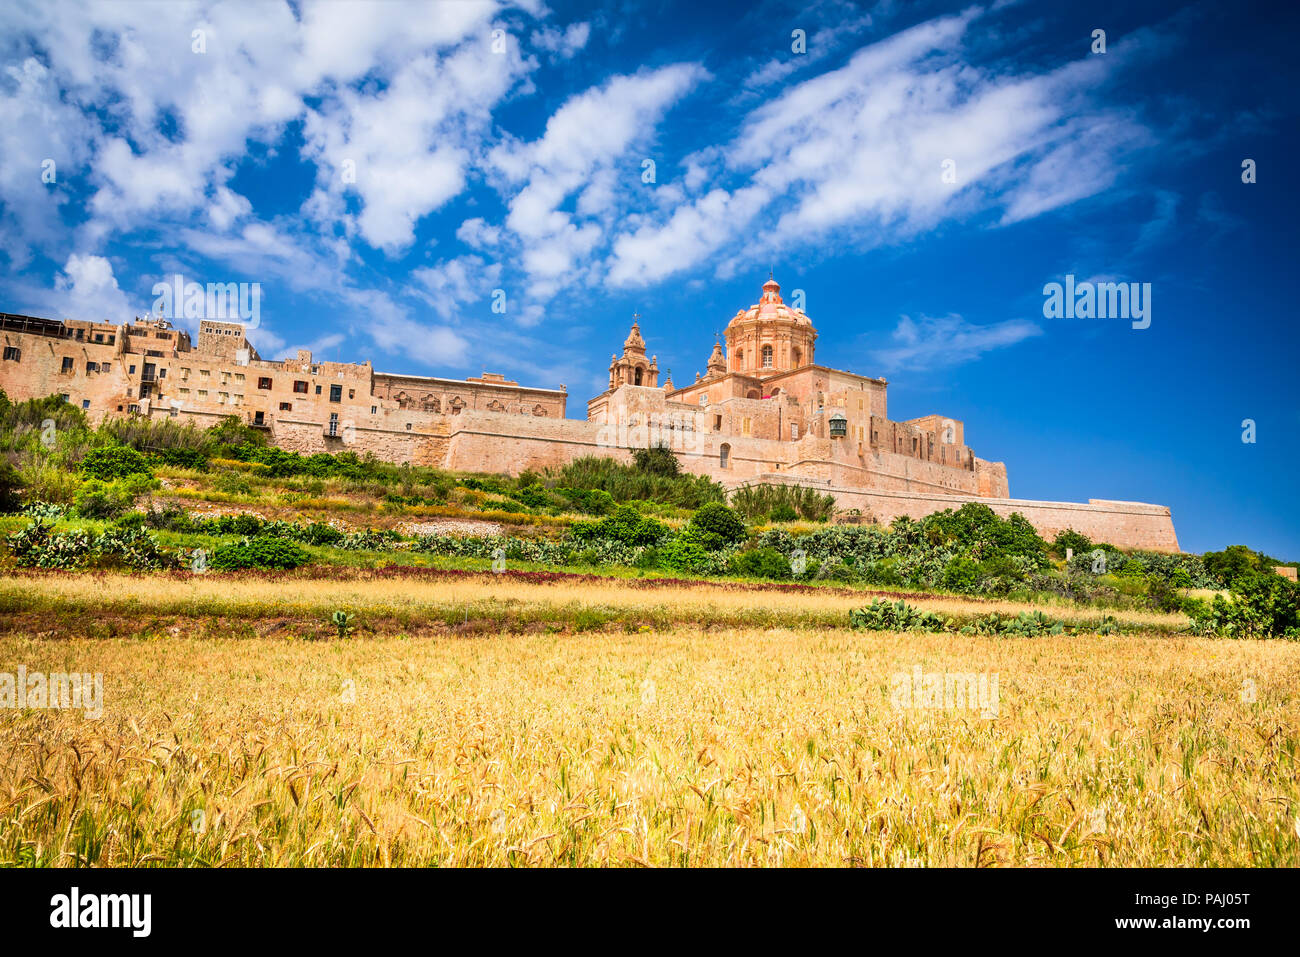 Mdina, Malta - a fortified city in the Northern Region of Malta, old capital of the island. - Stock Image